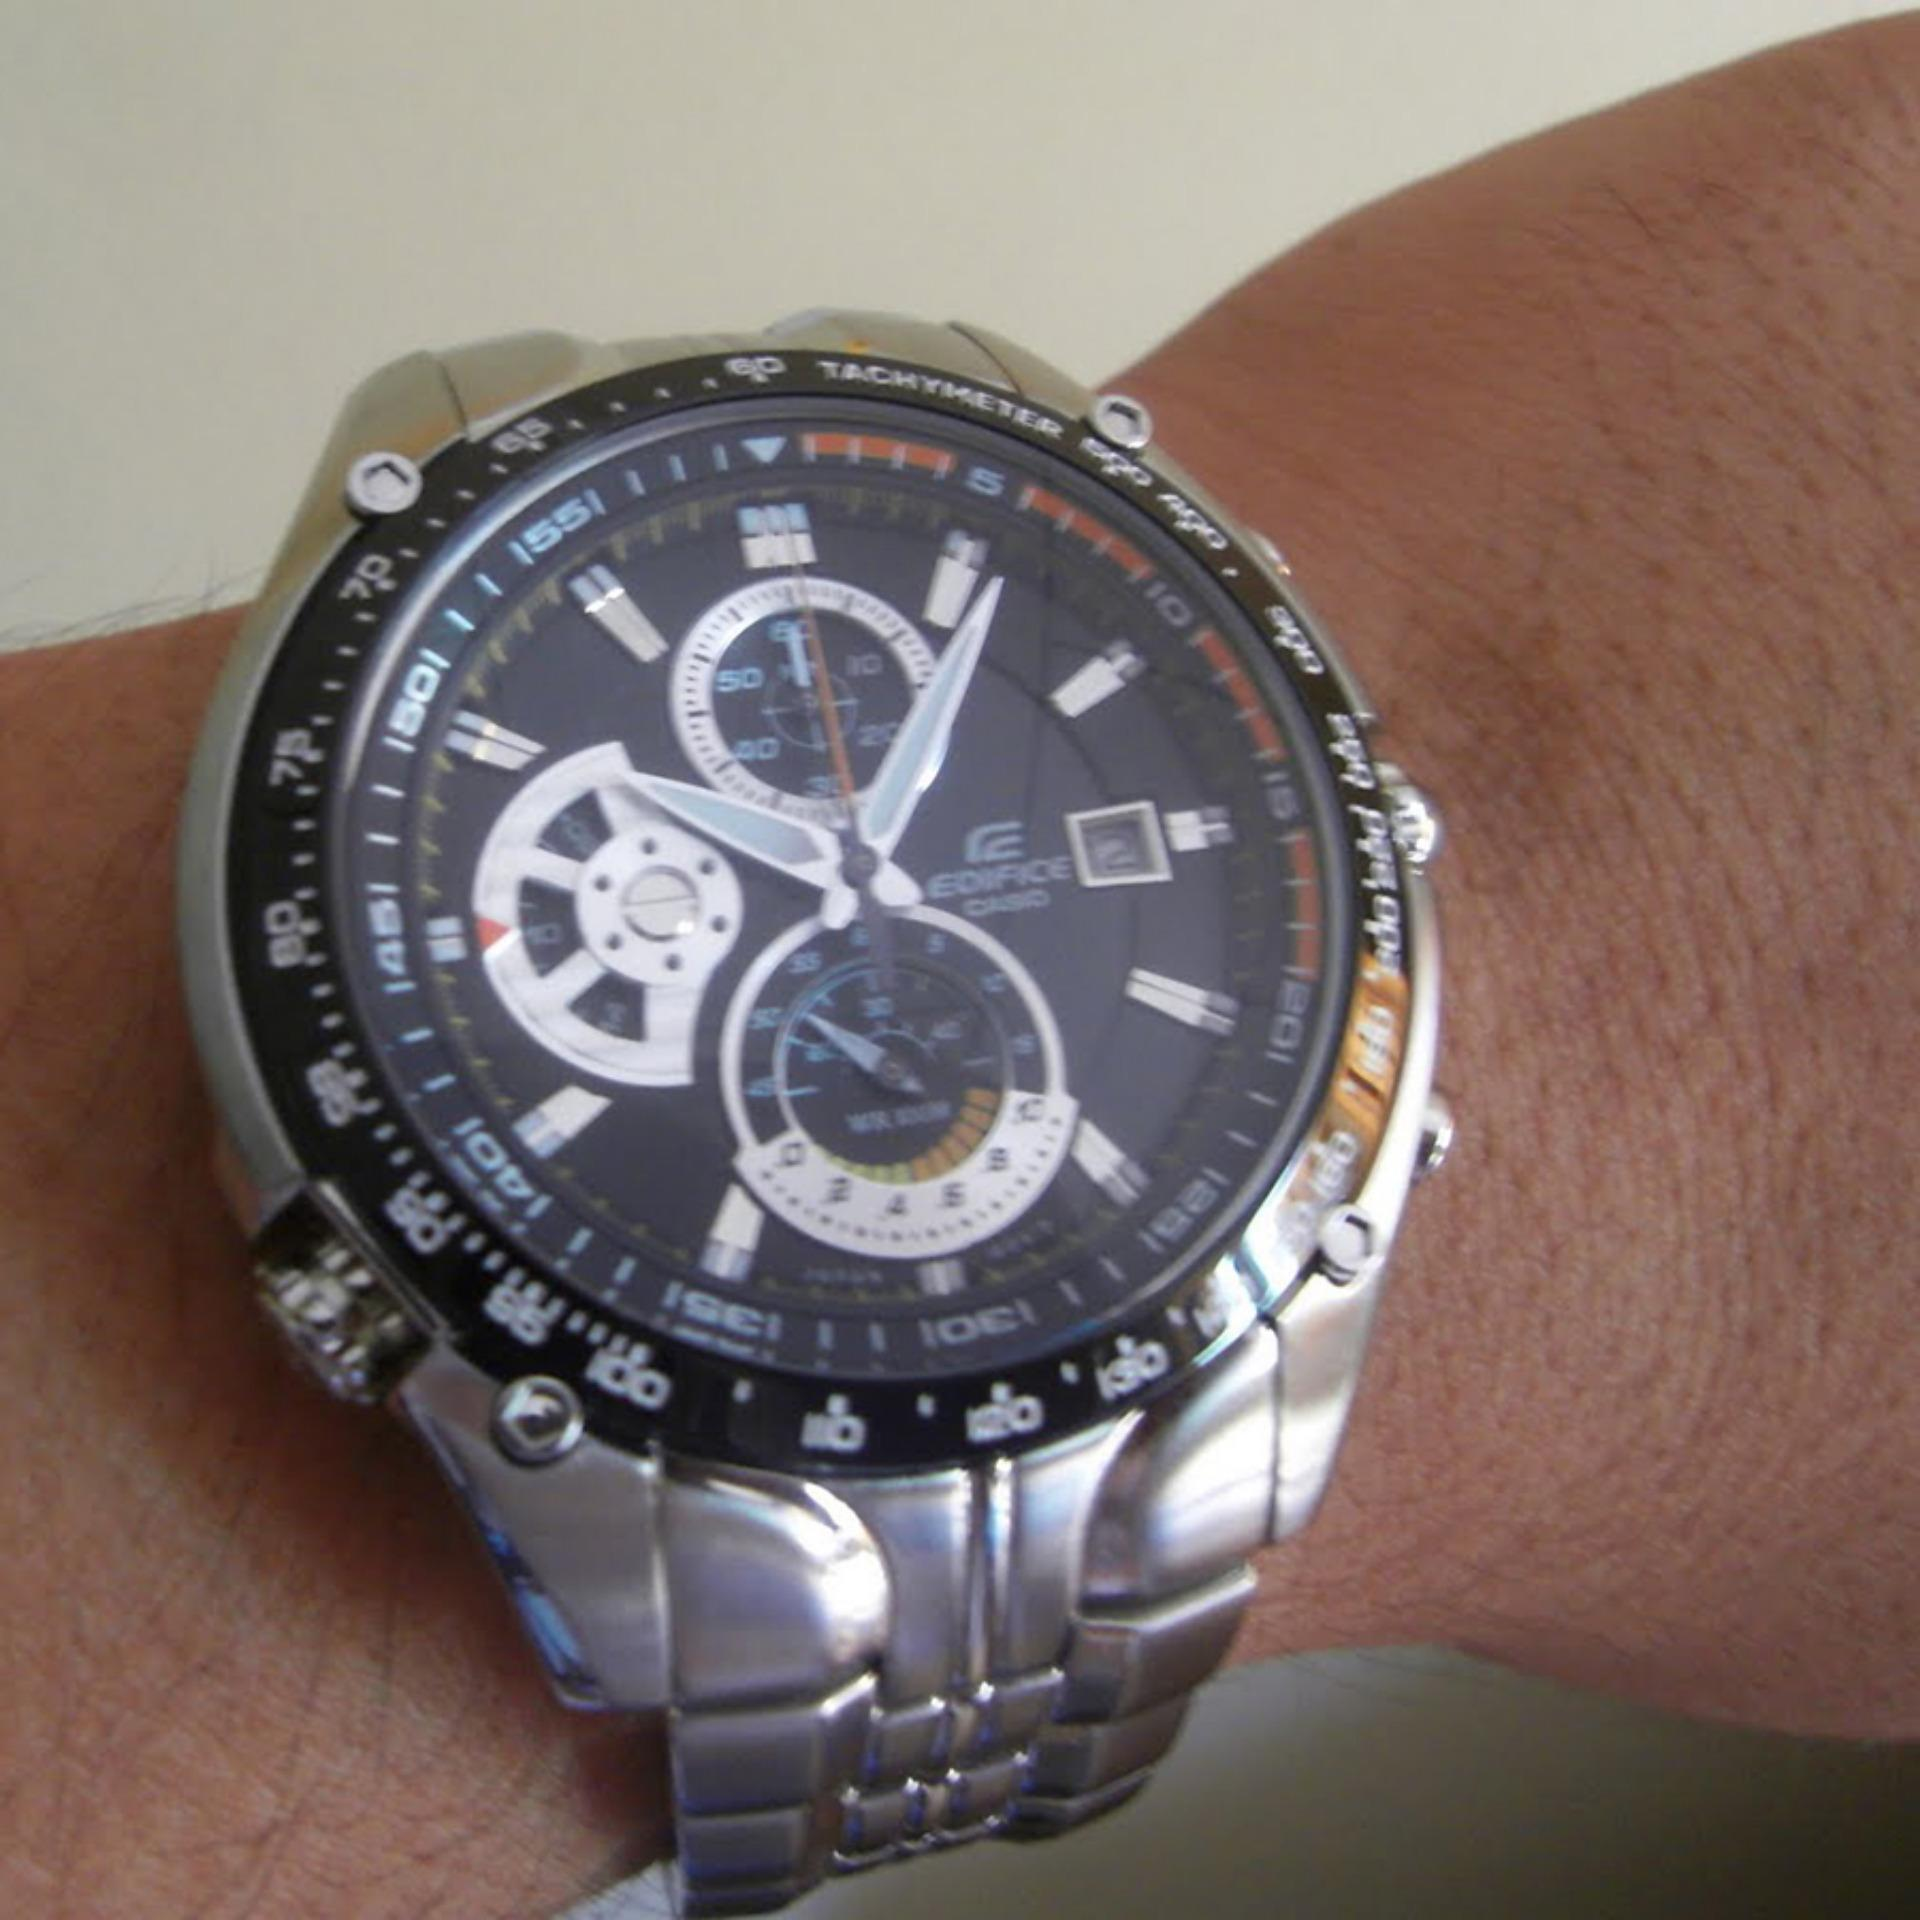 Fossil Machine Chronograph Jam Tangan Pria Silver Stainless Steel Ch2600 Hitam Casio Ediface D46h1329ef543d2avudf Chain